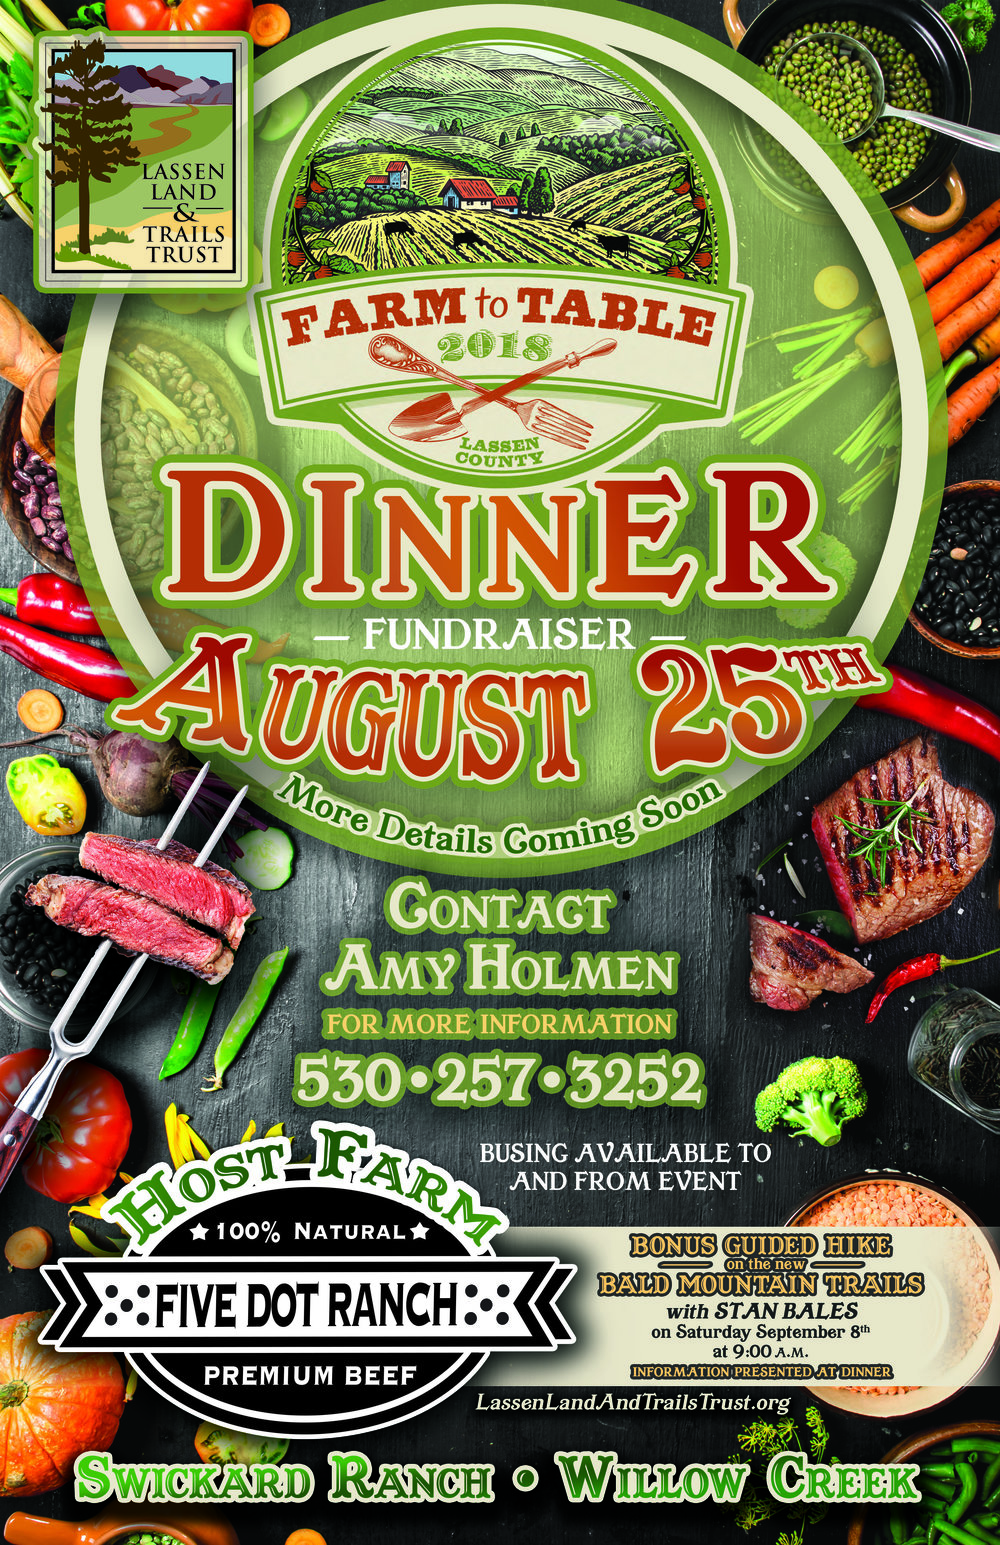 Farm to Table - Lassen Land & Trails Trust's 3rd annual Farm to Table Dinner will highlight the local farms, ranches, and gardens of Lassen County.